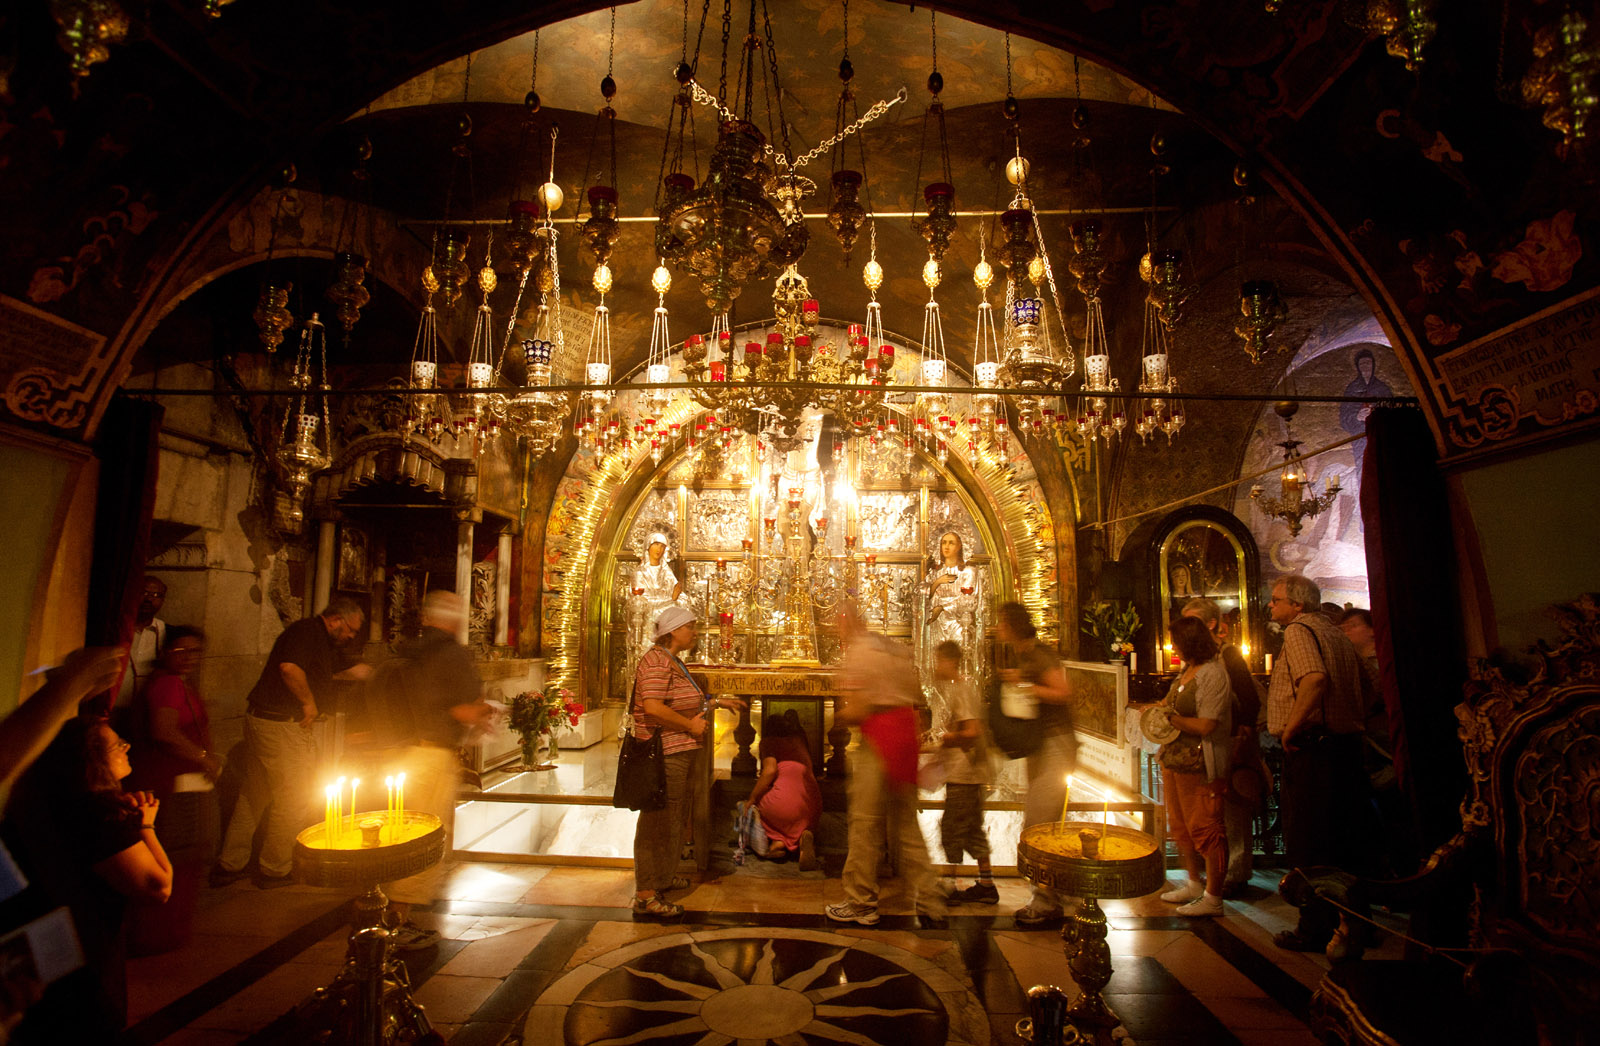 church of the holy sepulchre, christian quarter, old city jerusalem